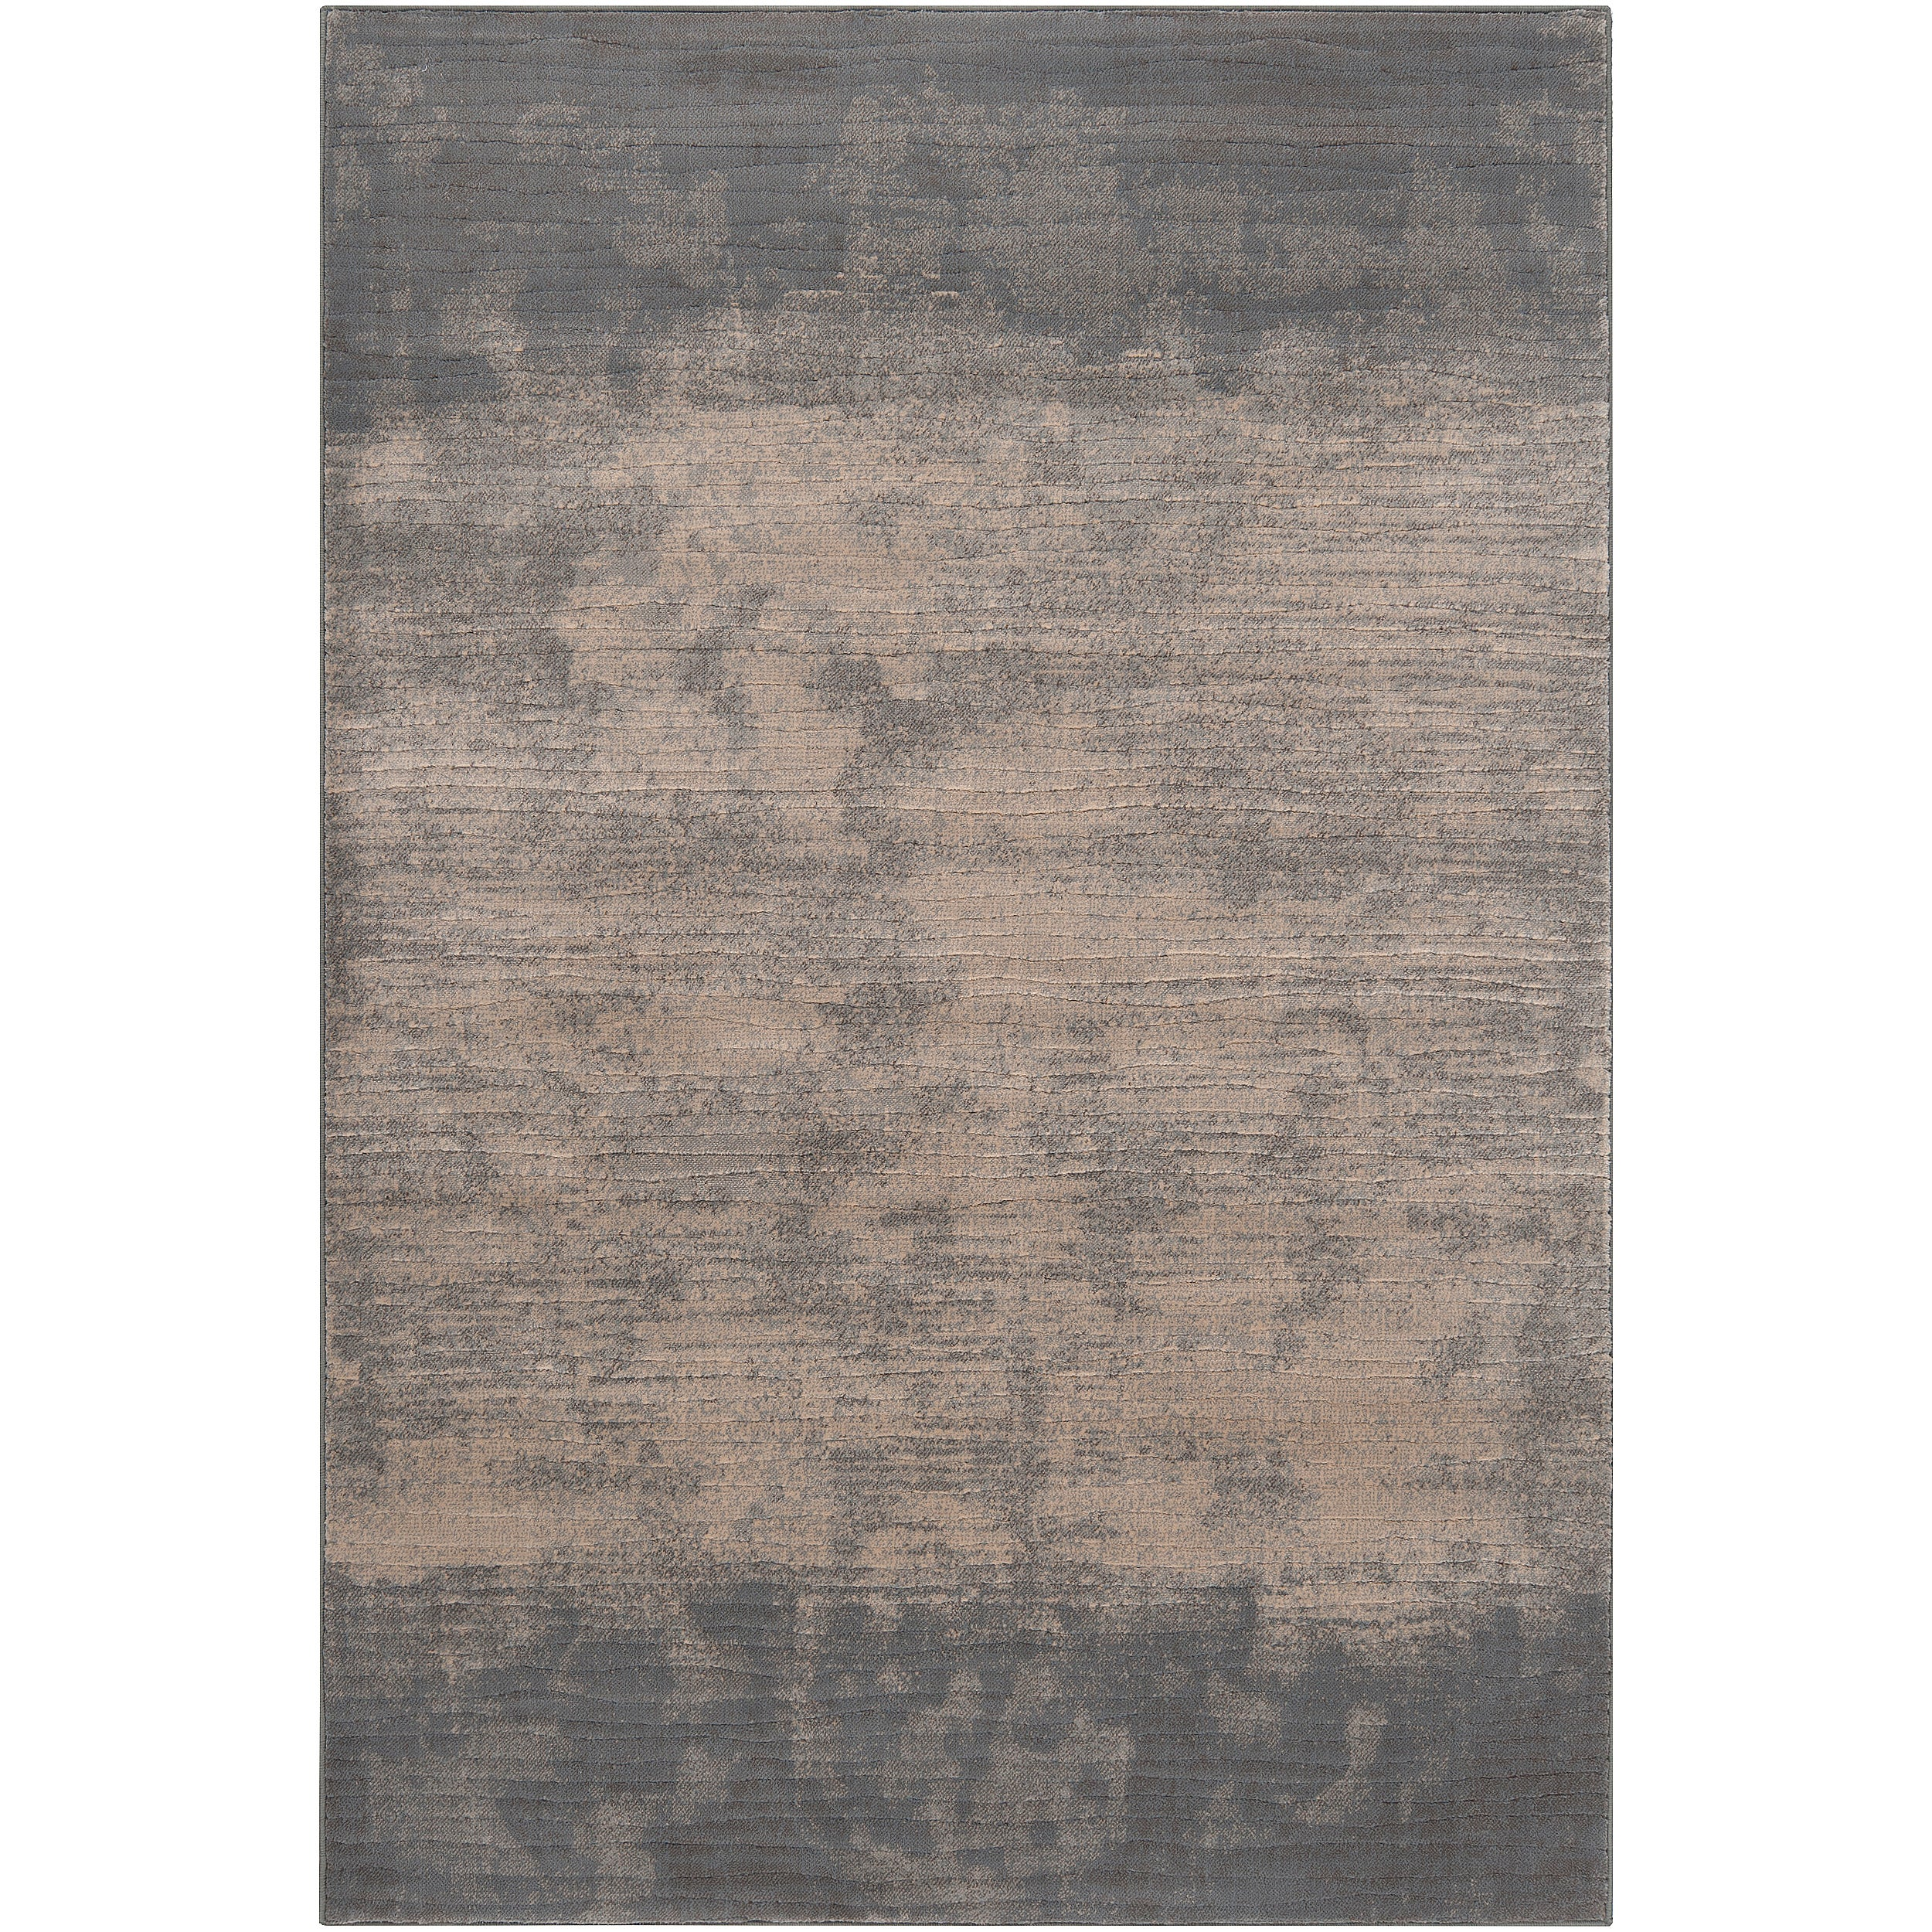 Meticulously Woven Gray Contemporary Abstruse Abstract ...